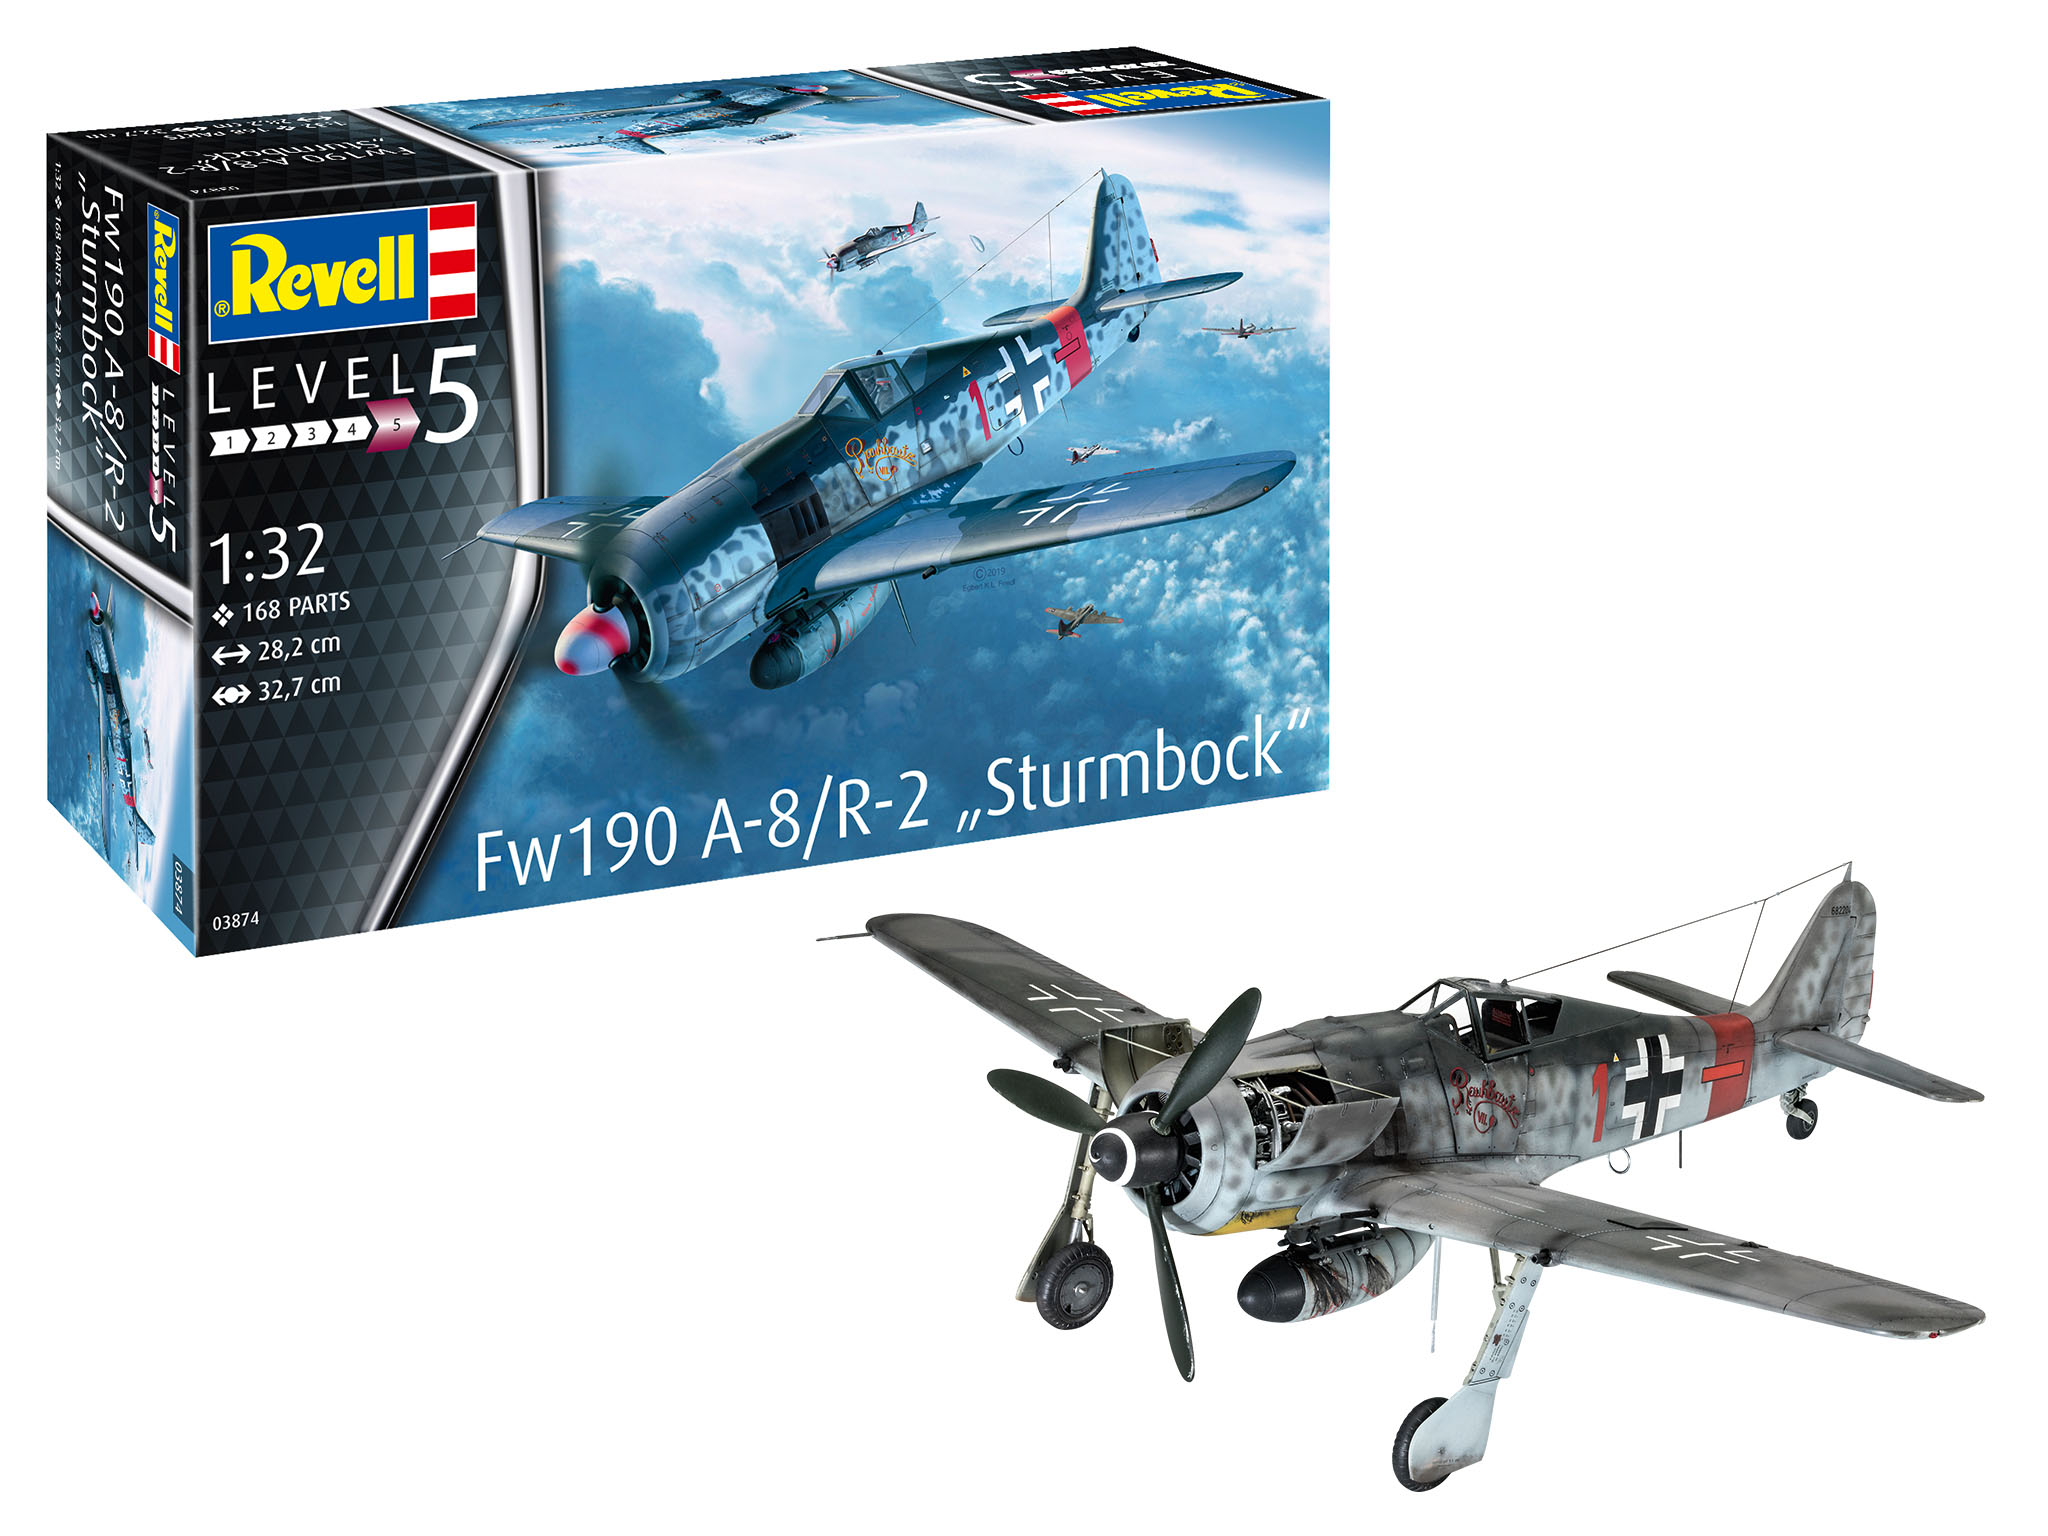 Revell of Germany FW190 A-8/R2 Sturmbock 1:32 Scale